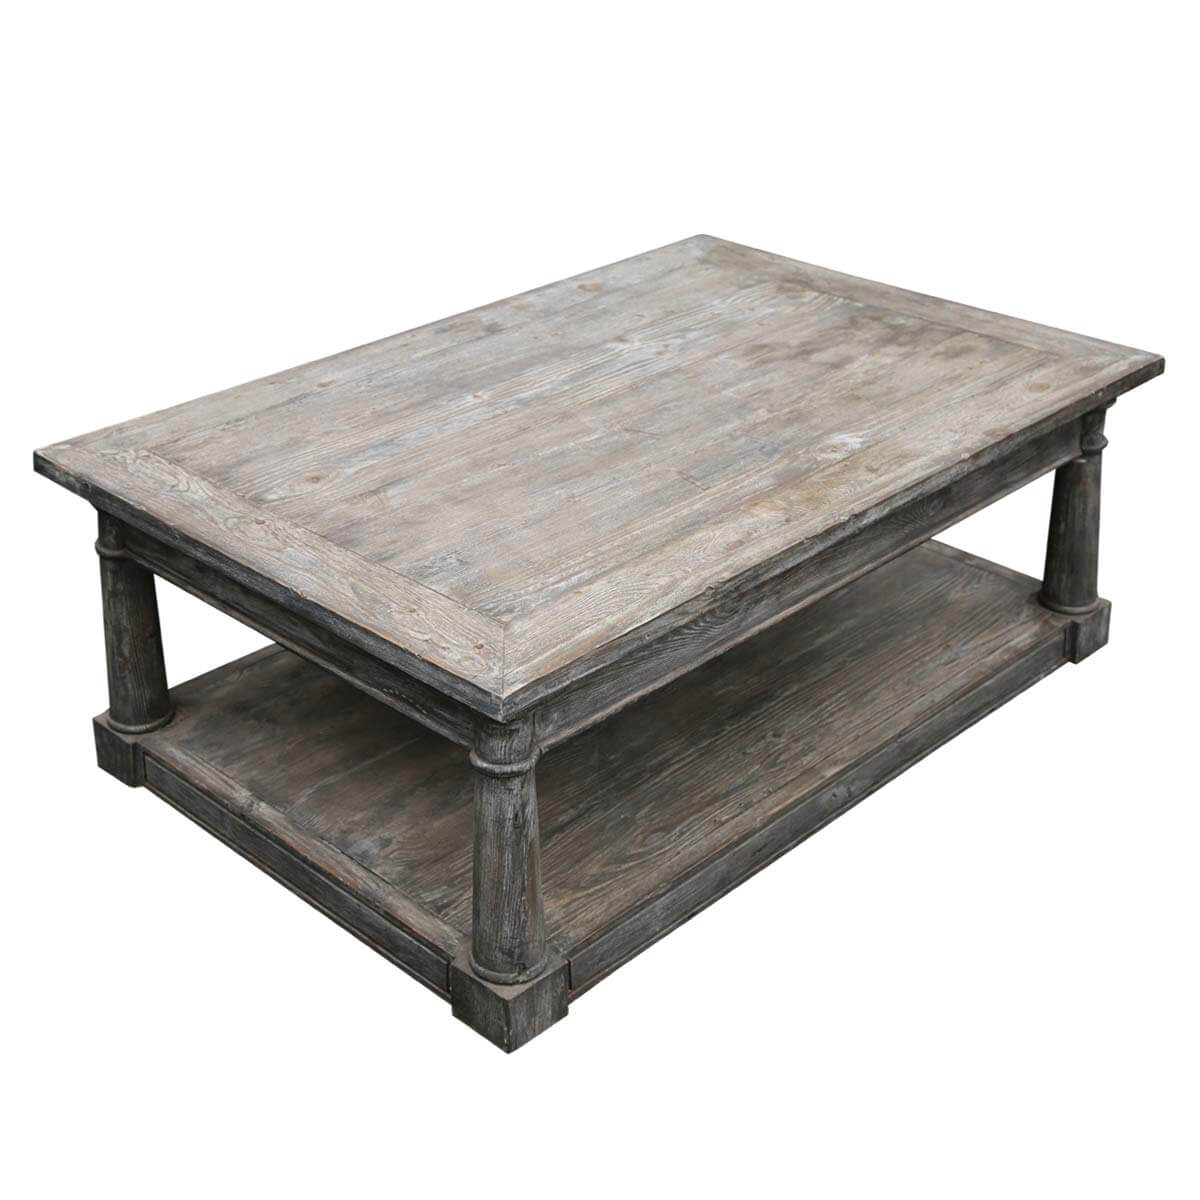 shabby chic rectangle baluster coffee table made of teak wood